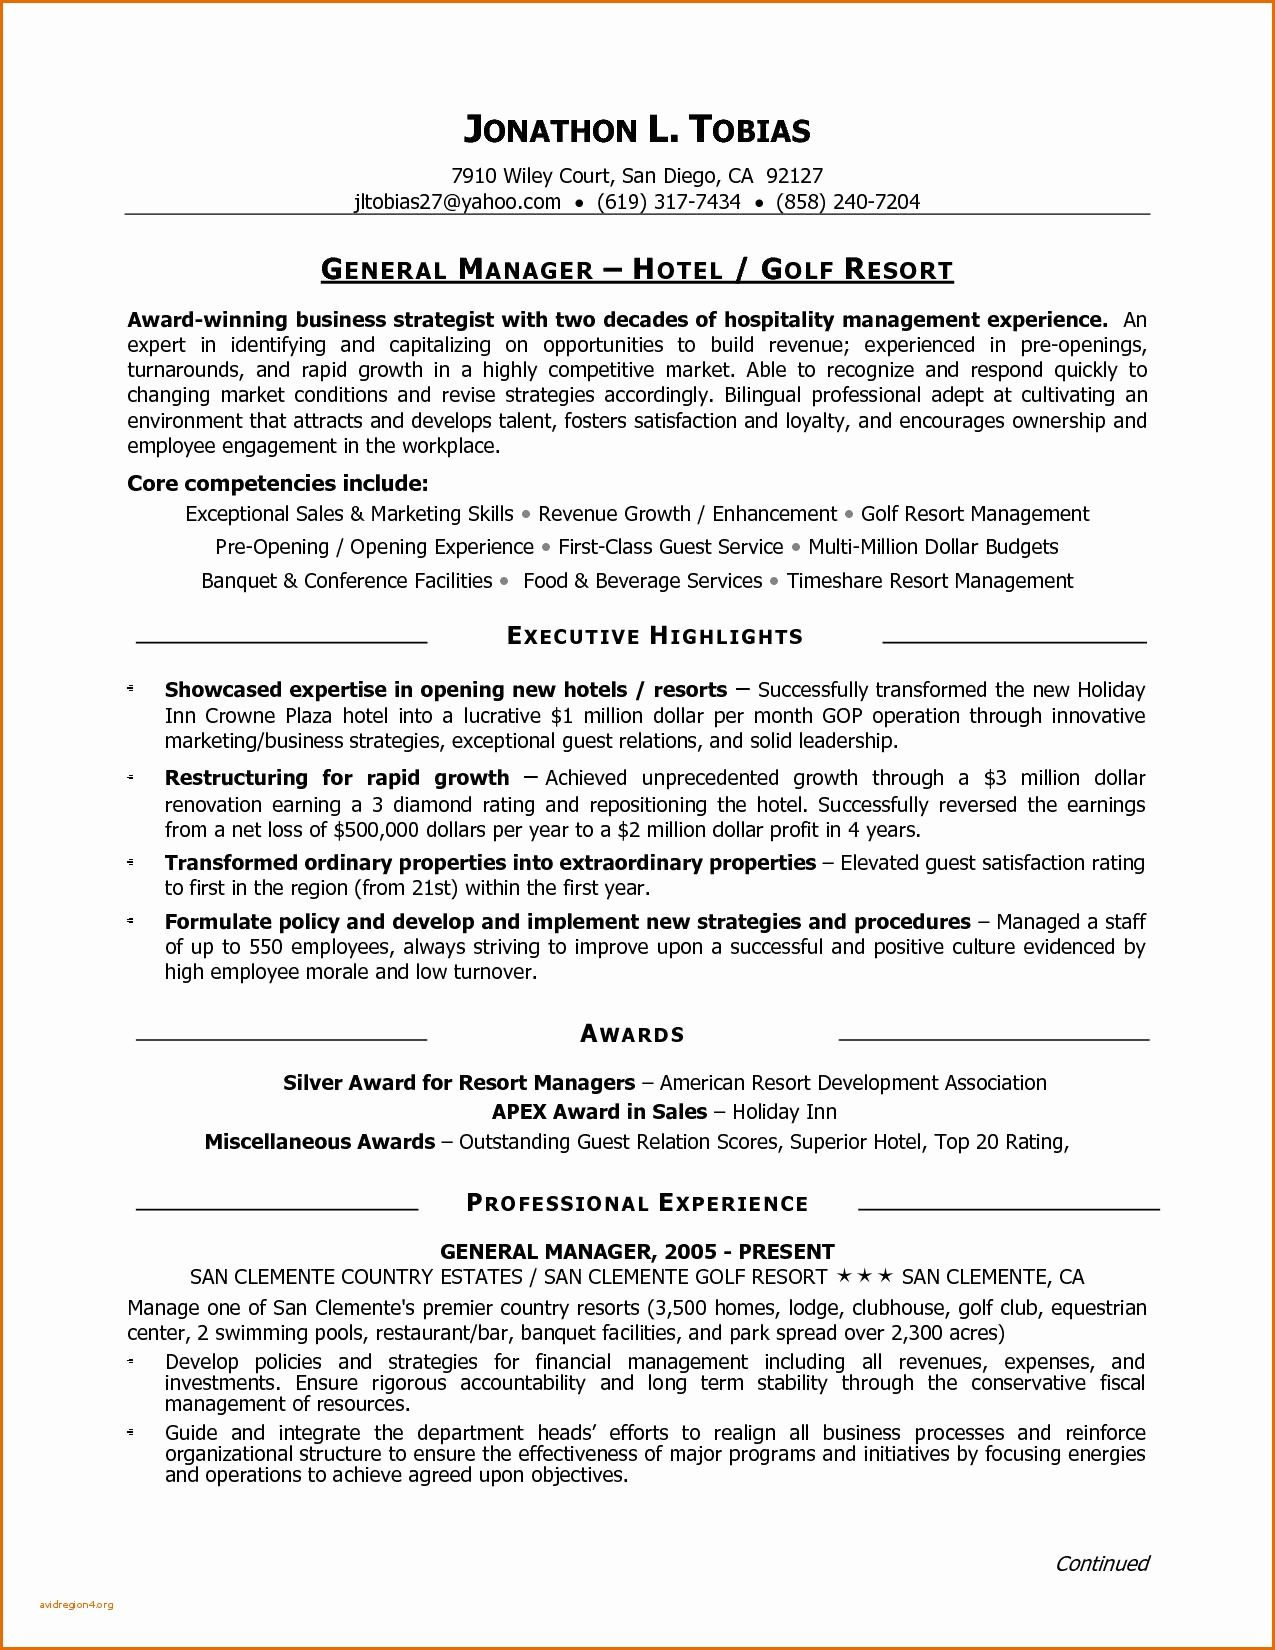 80 Beautiful Images Of Resume Examples For Golf Professional Check